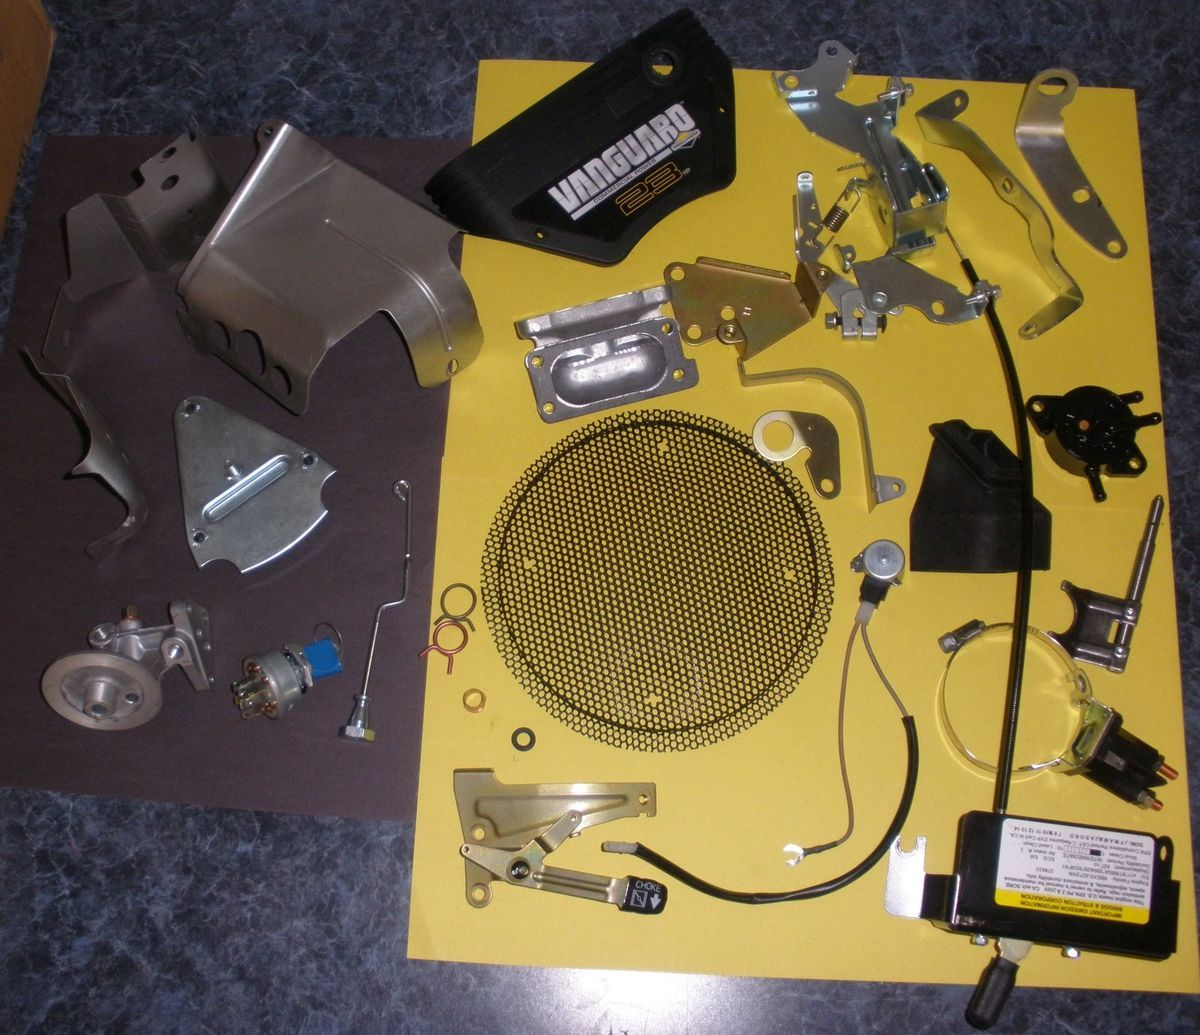 Workhorse Wiring Diagram Motorhome in addition Wheeled Coach Wiring Diagrams besides Electric Paper Cutter moreover 1994 Acura Integra Wiring Diagram Tachometer in addition Monaco Coach Wiring Diagrams. on spartan motors wiring diagram